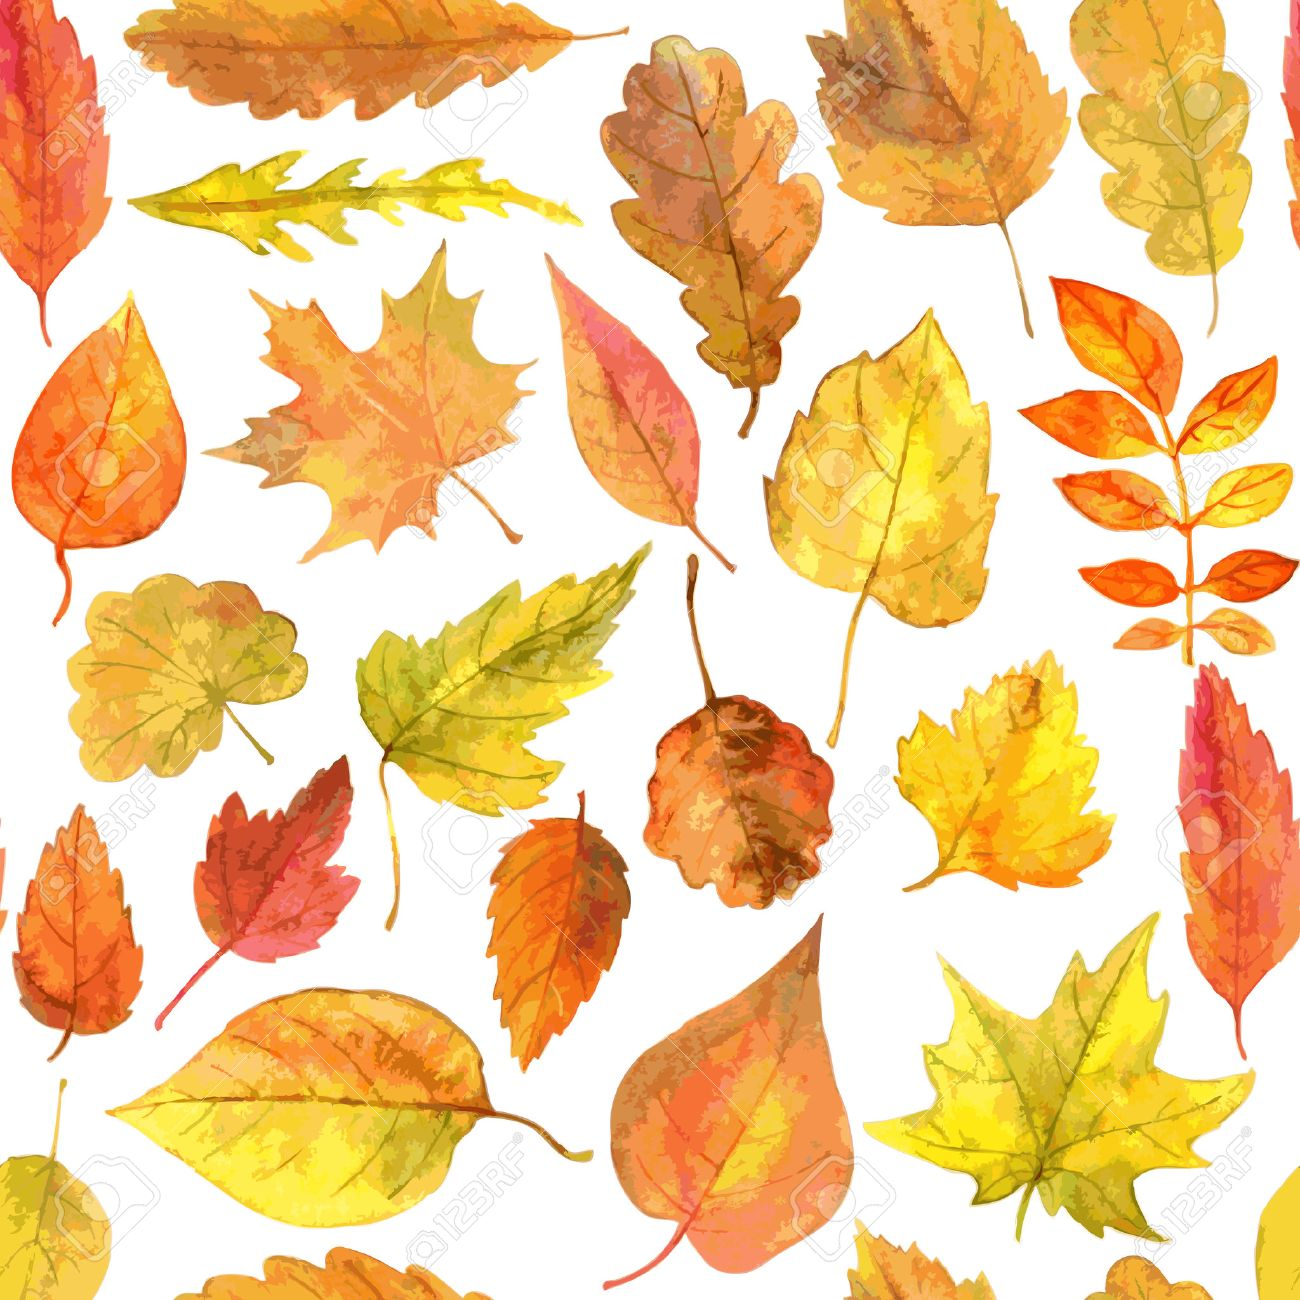 vector seamless pattern with autumn leaves drawing by watercolor, hand drawn vector elements - 38899414